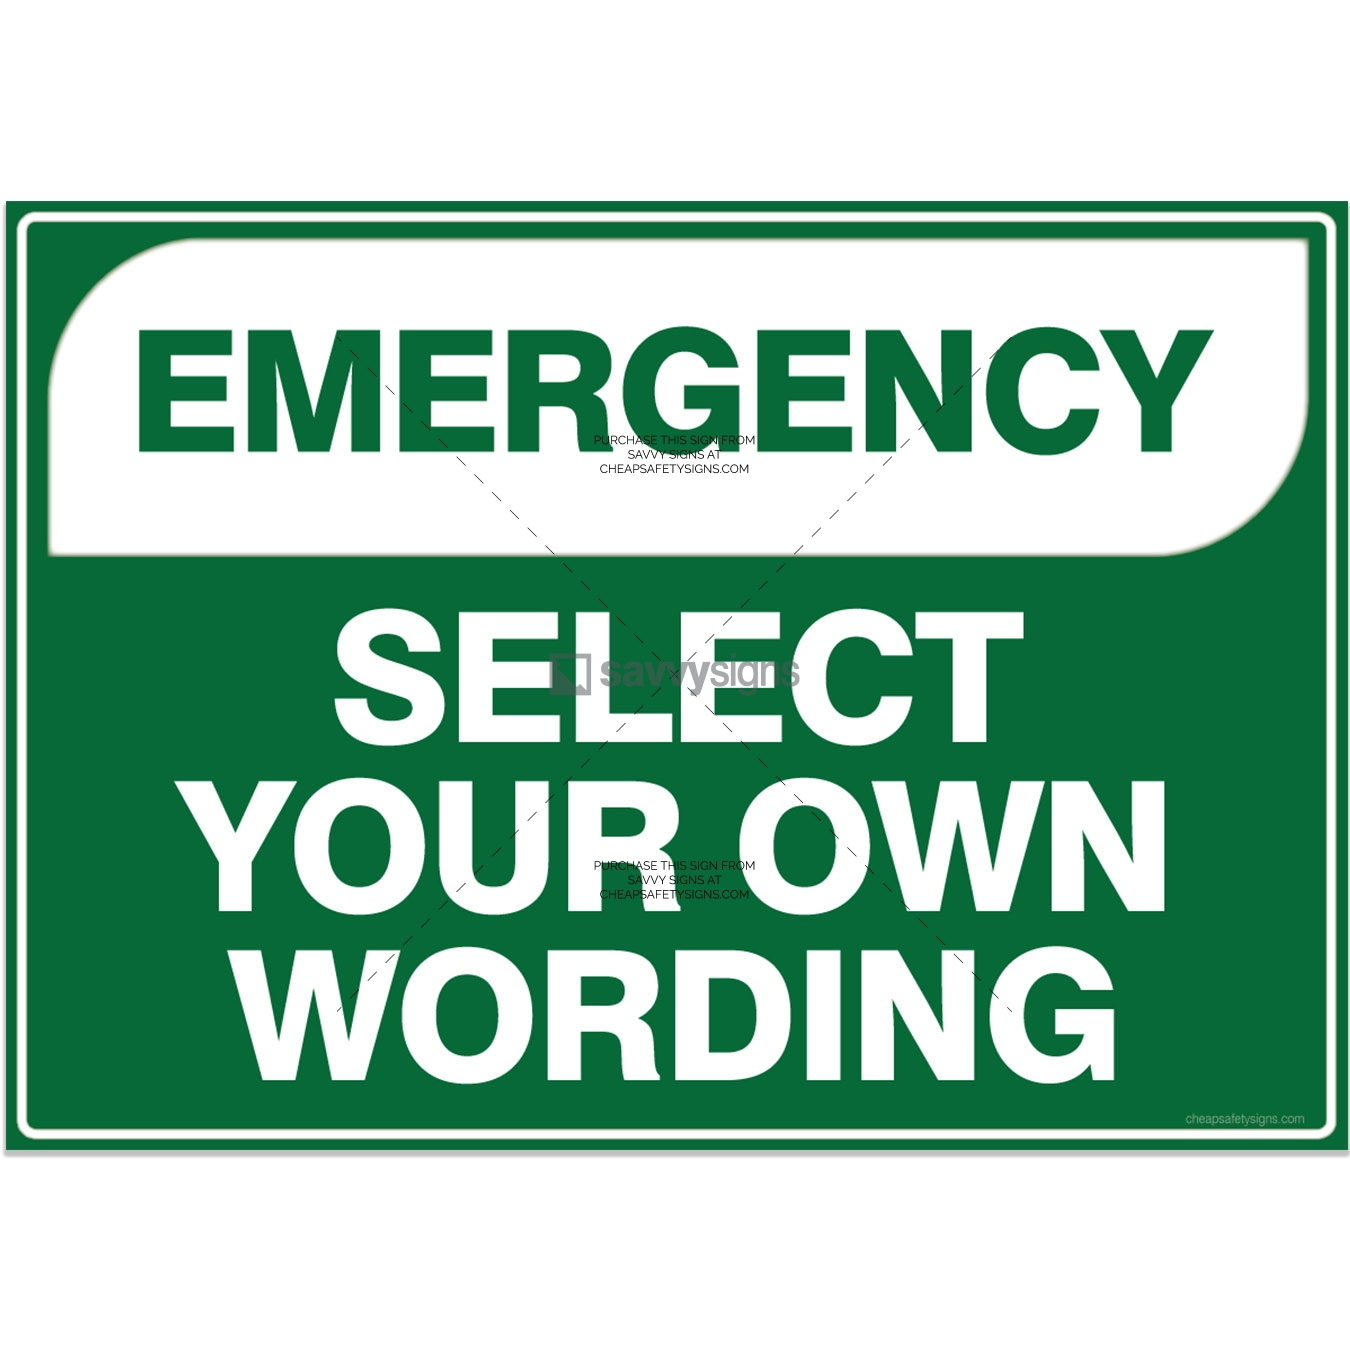 SSEM3L000-Emergency-Select-Your-Own-Wording-Workplace-Safety-Signs-savvysigns